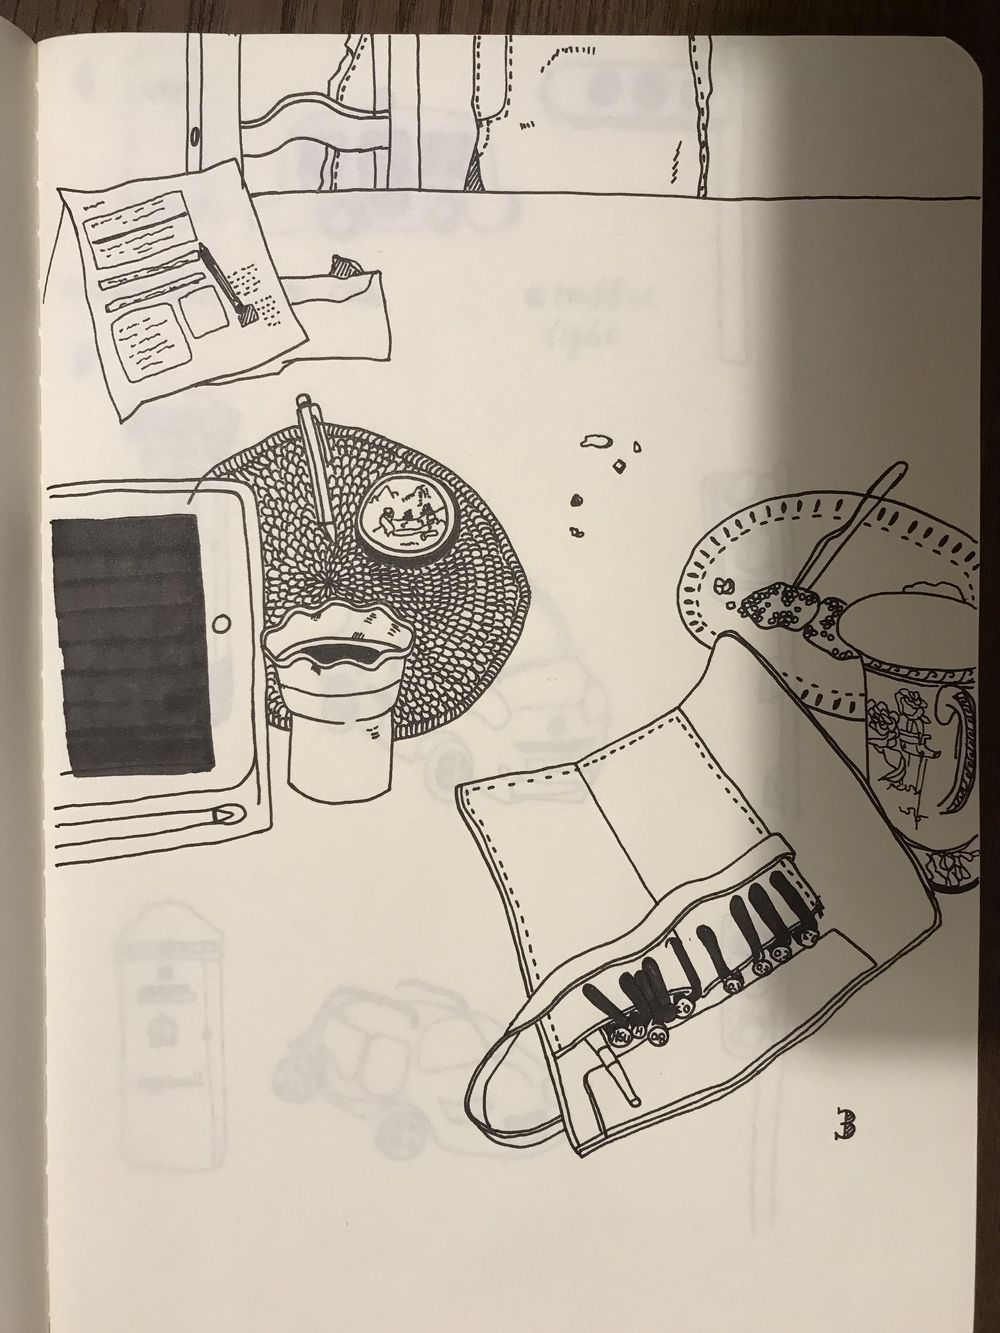 Draw what I see - image 3 - student project